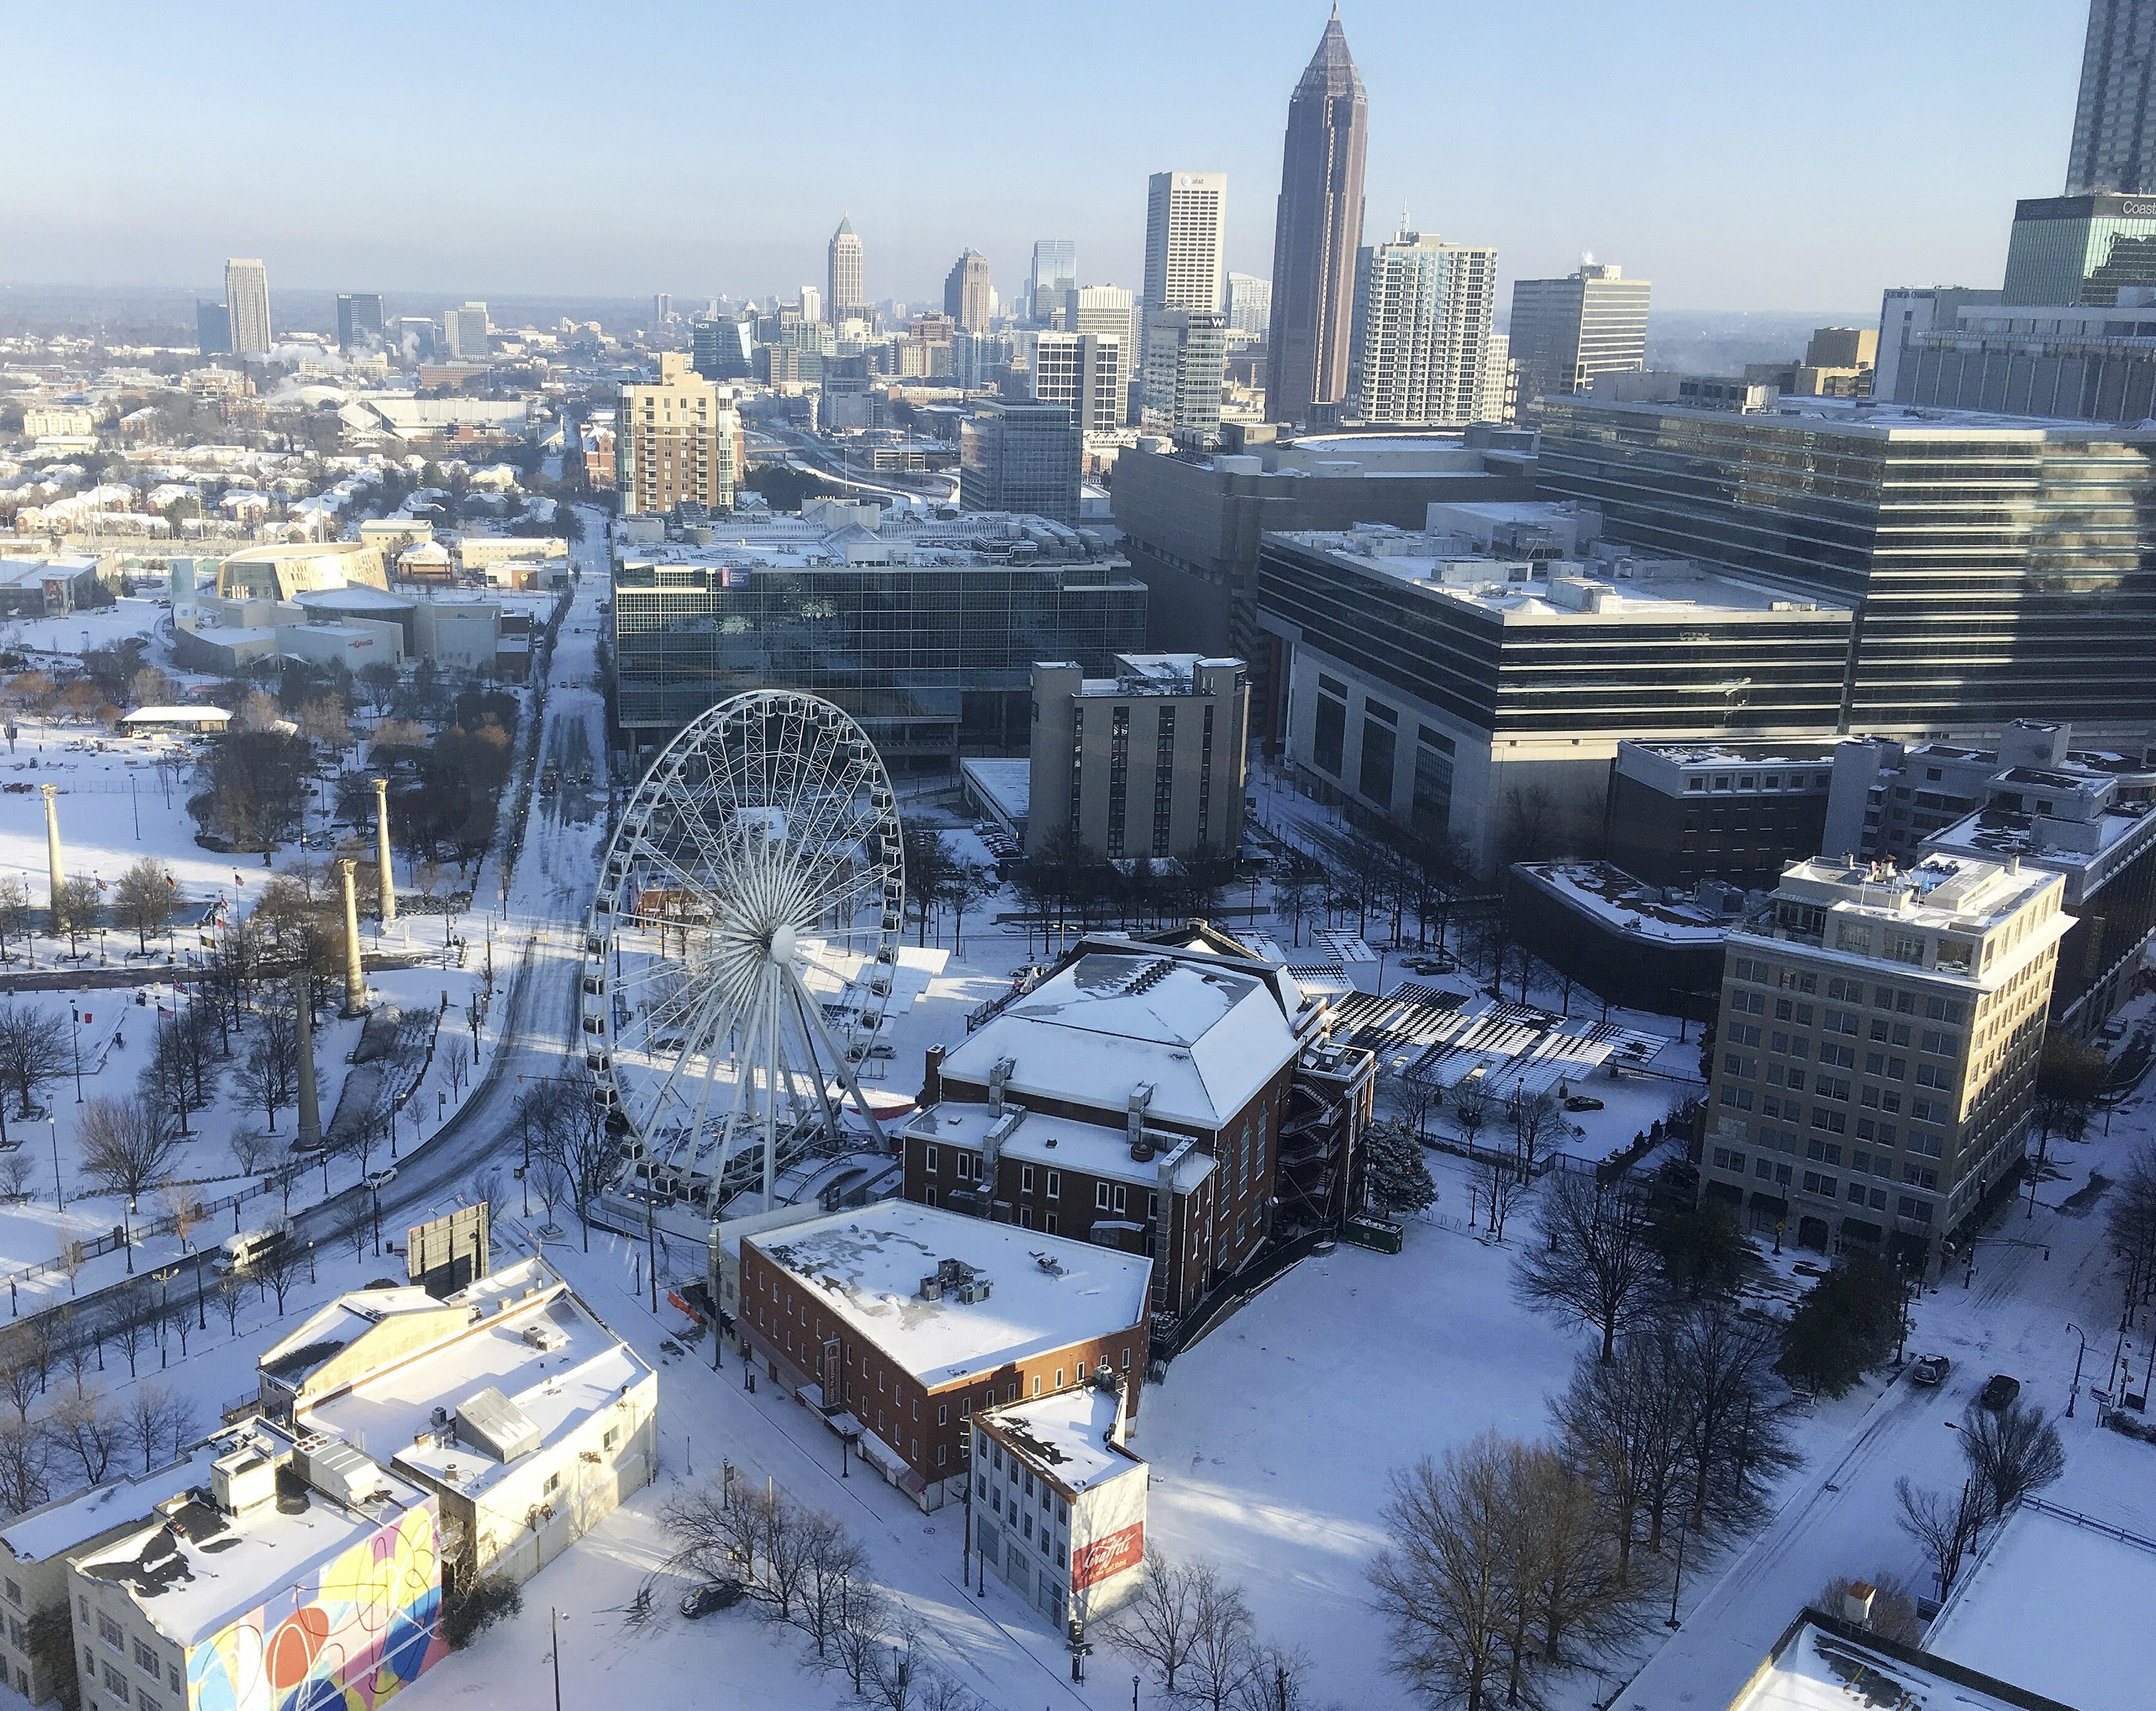 Across the South, it's snow, ice and record-breaking cold